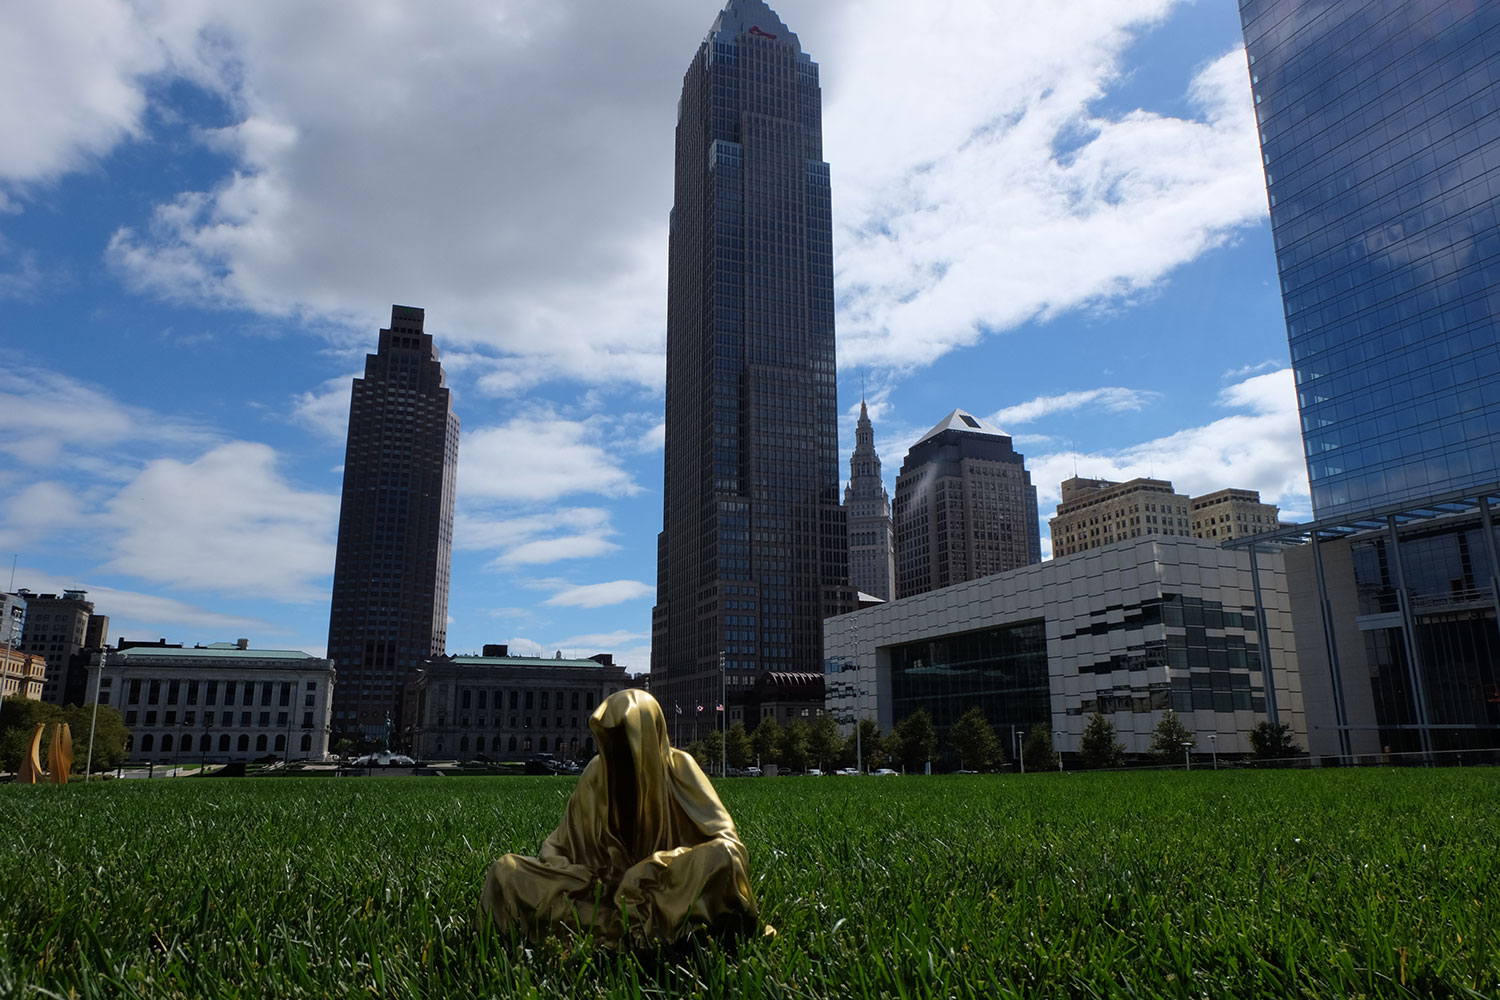 cleveland-usa-artparize-show-usa-contemporary-art-fine-light-arts-sculpture-guardians-of-time-manfred-kili-kielnhofer-8346